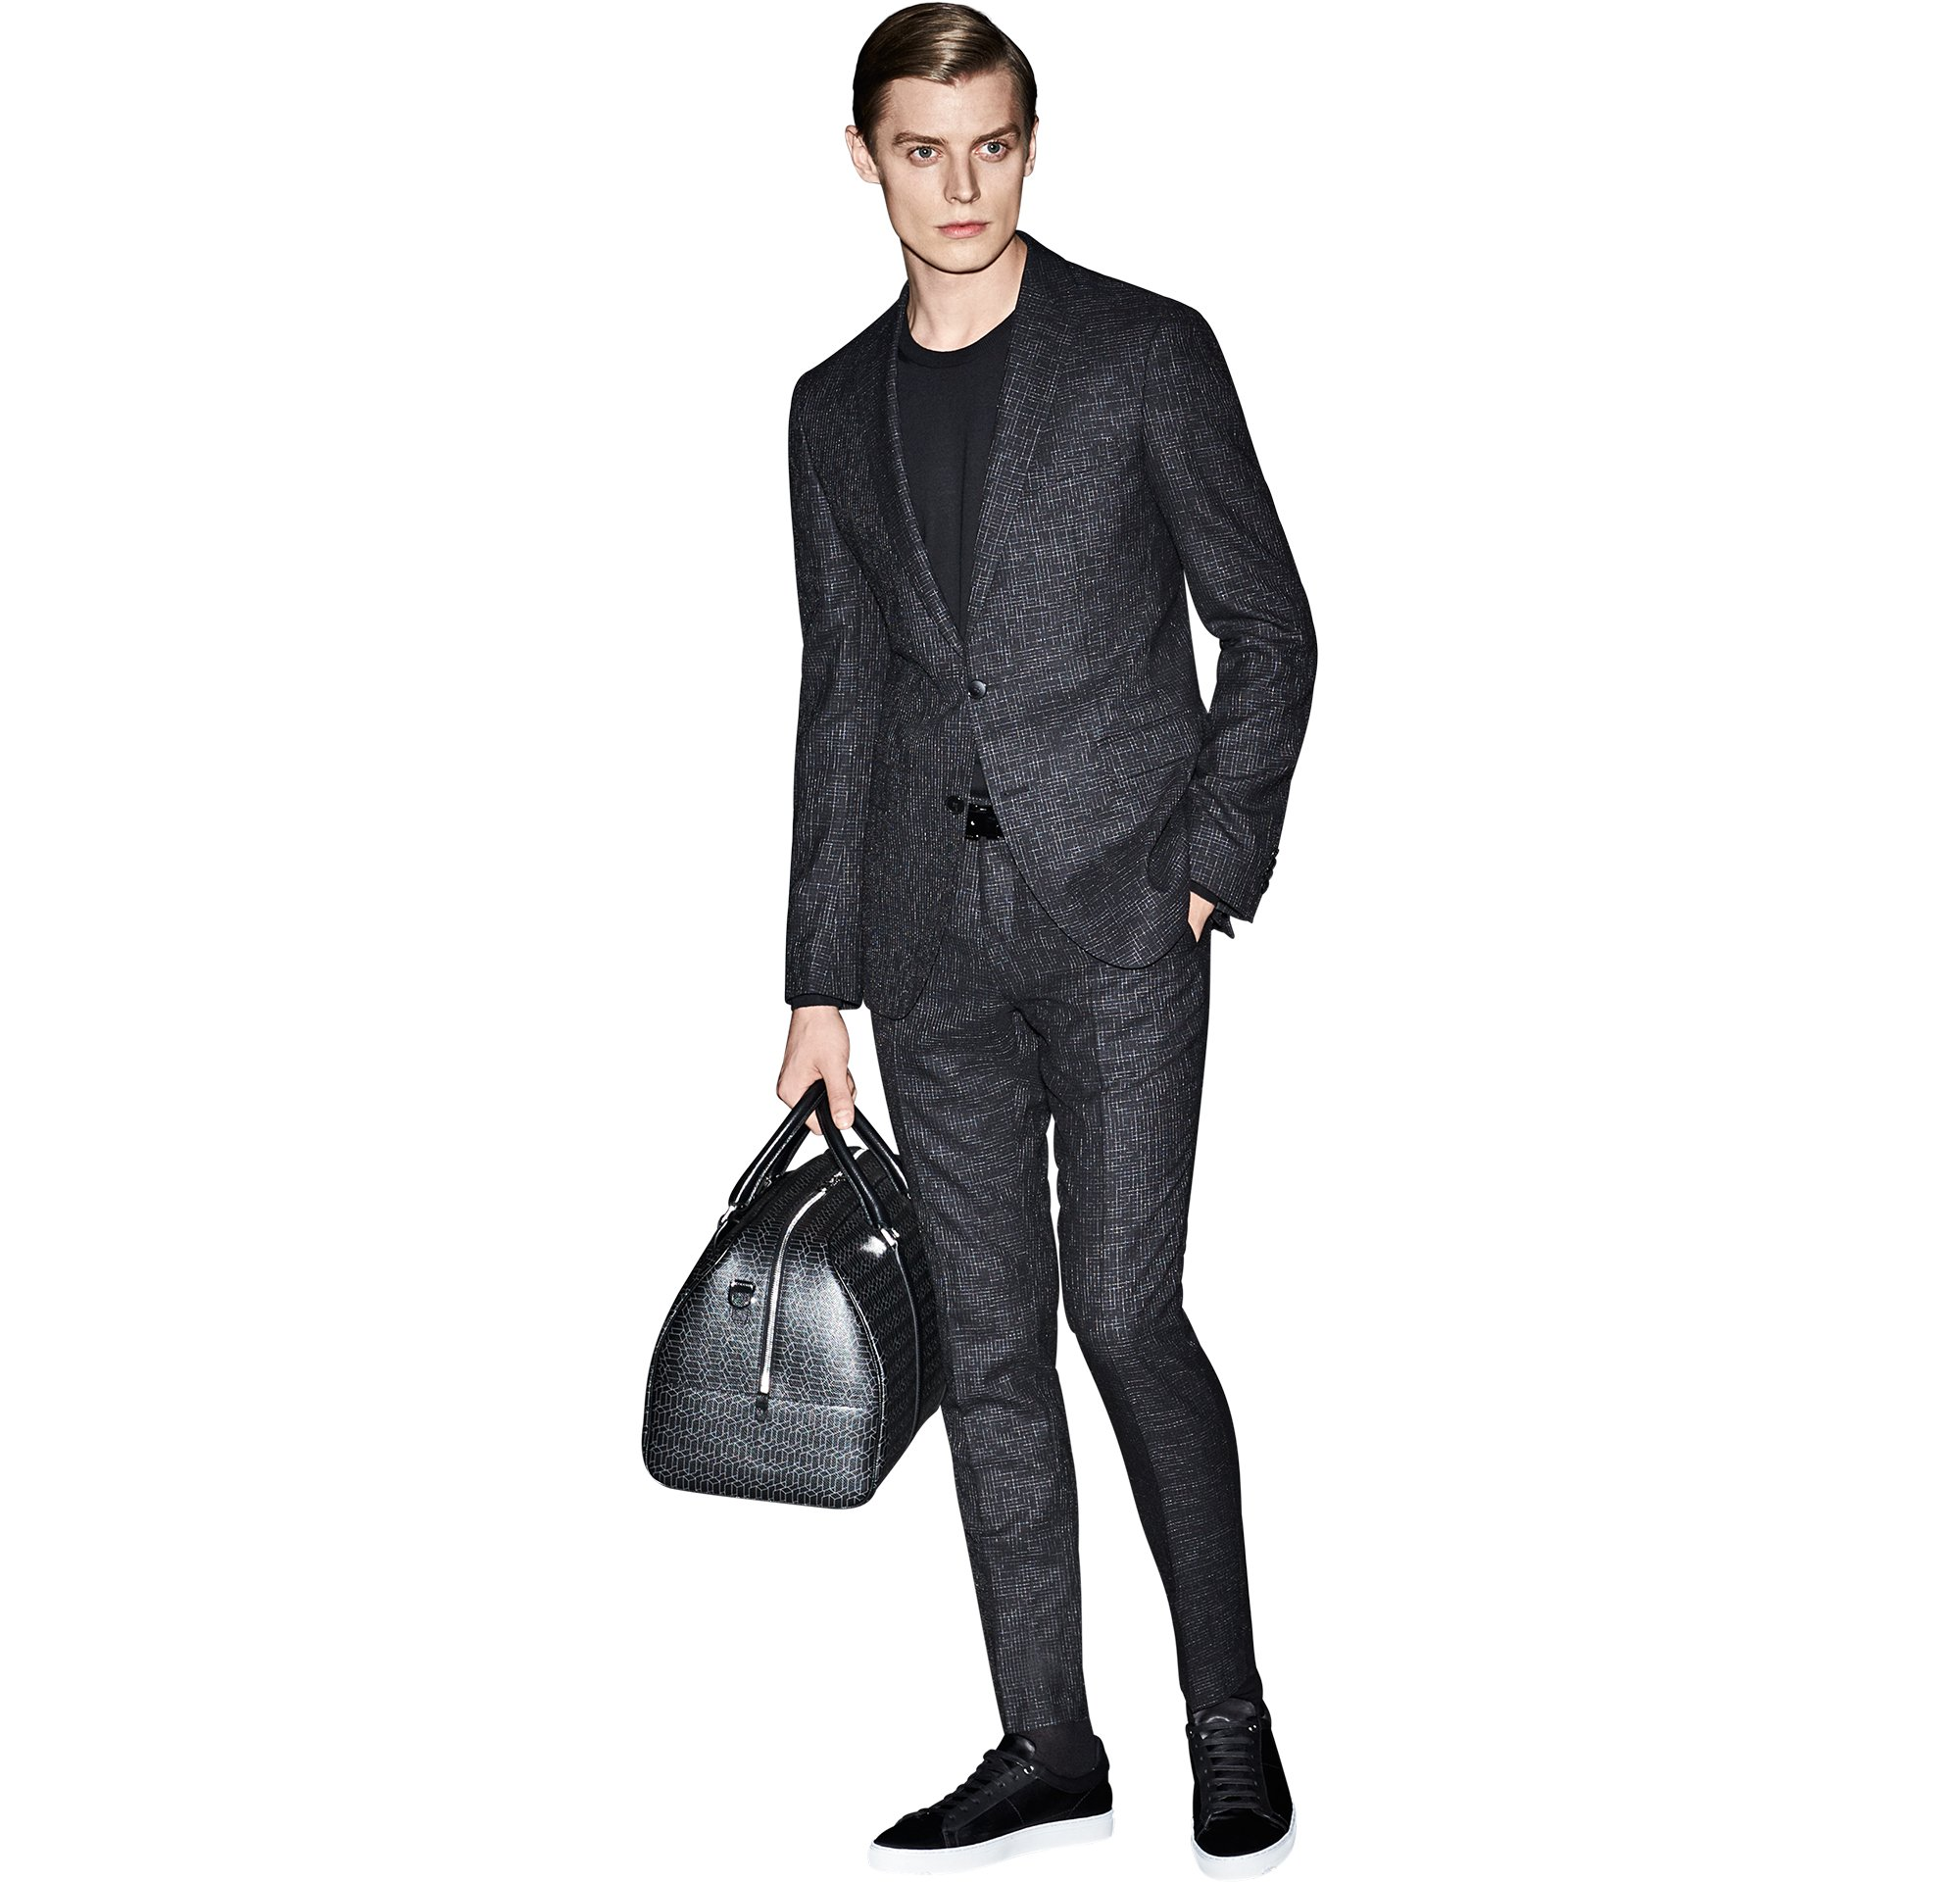 US_BOSS_Men_PS17_Look_13,